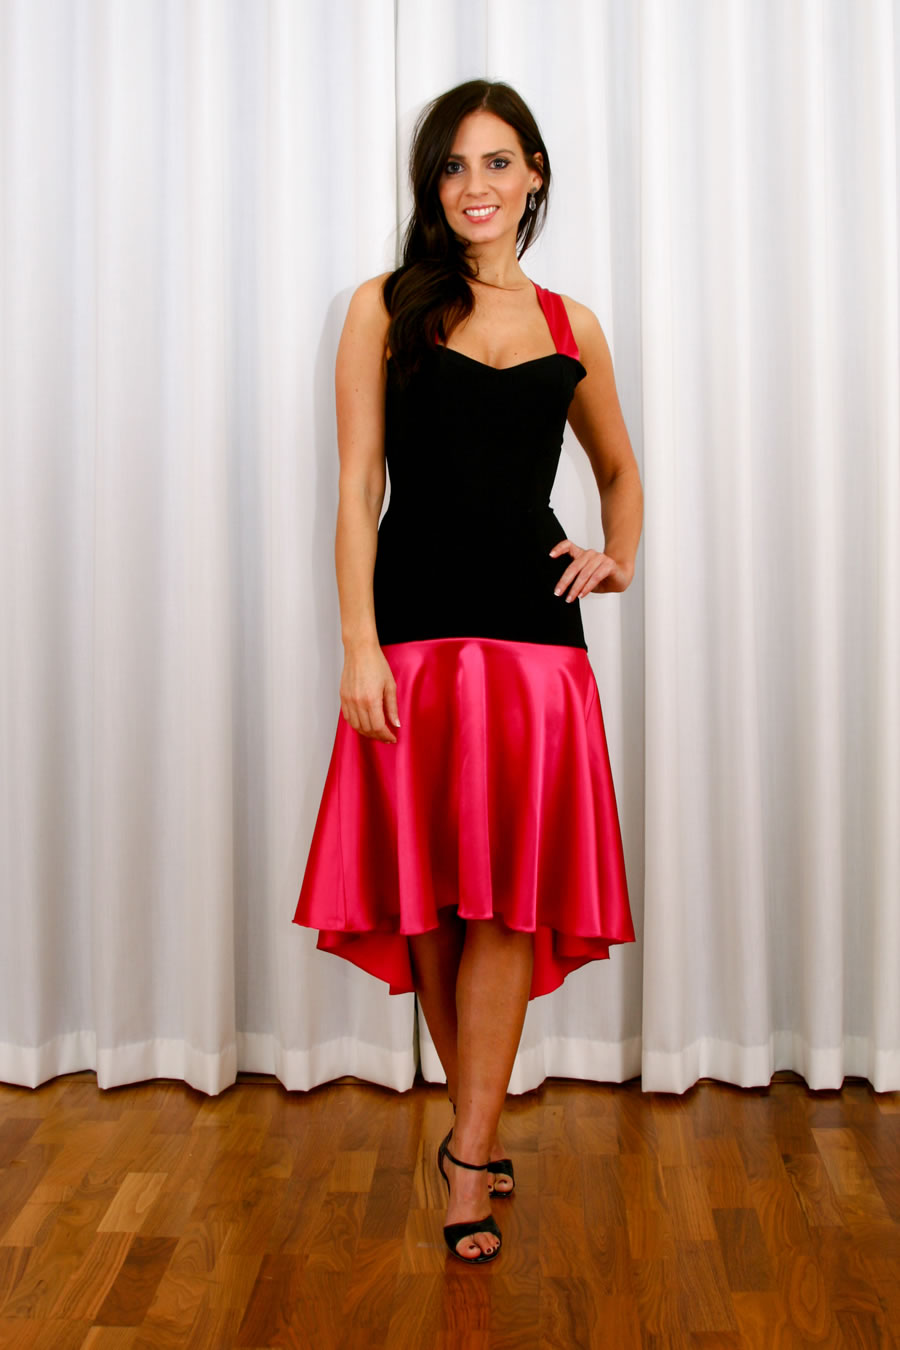 Tango Clothing Dresses Fashion Made In The Uk: Tango Clothing, Dresses & Fashion Made In The UK: Glamour